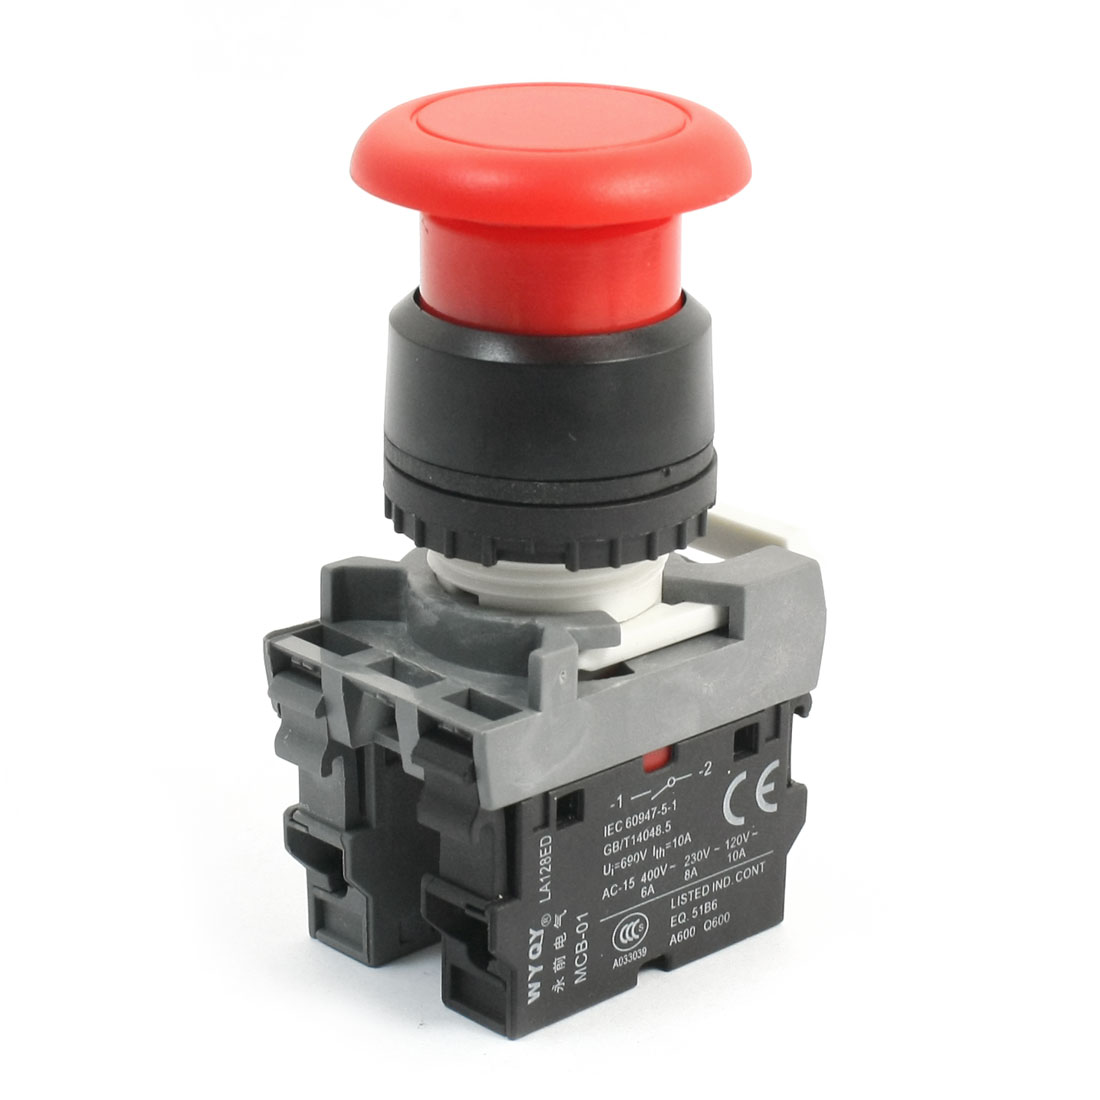 690V 10A 1NO 1NC DPST Momentary Red Mushroom Head Push Button Pushbutton Switch